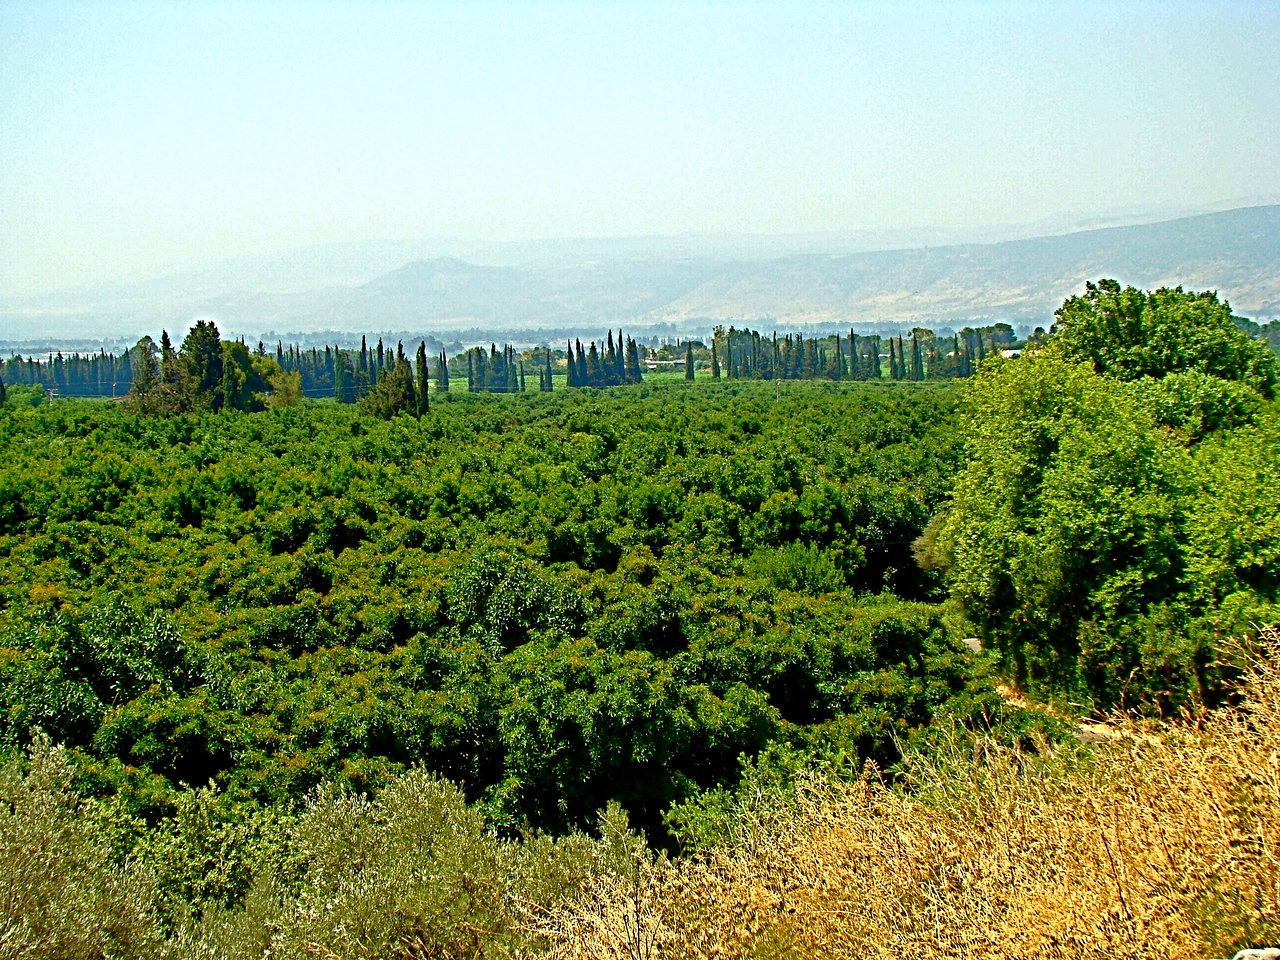 Tel Dan-Hula Valley